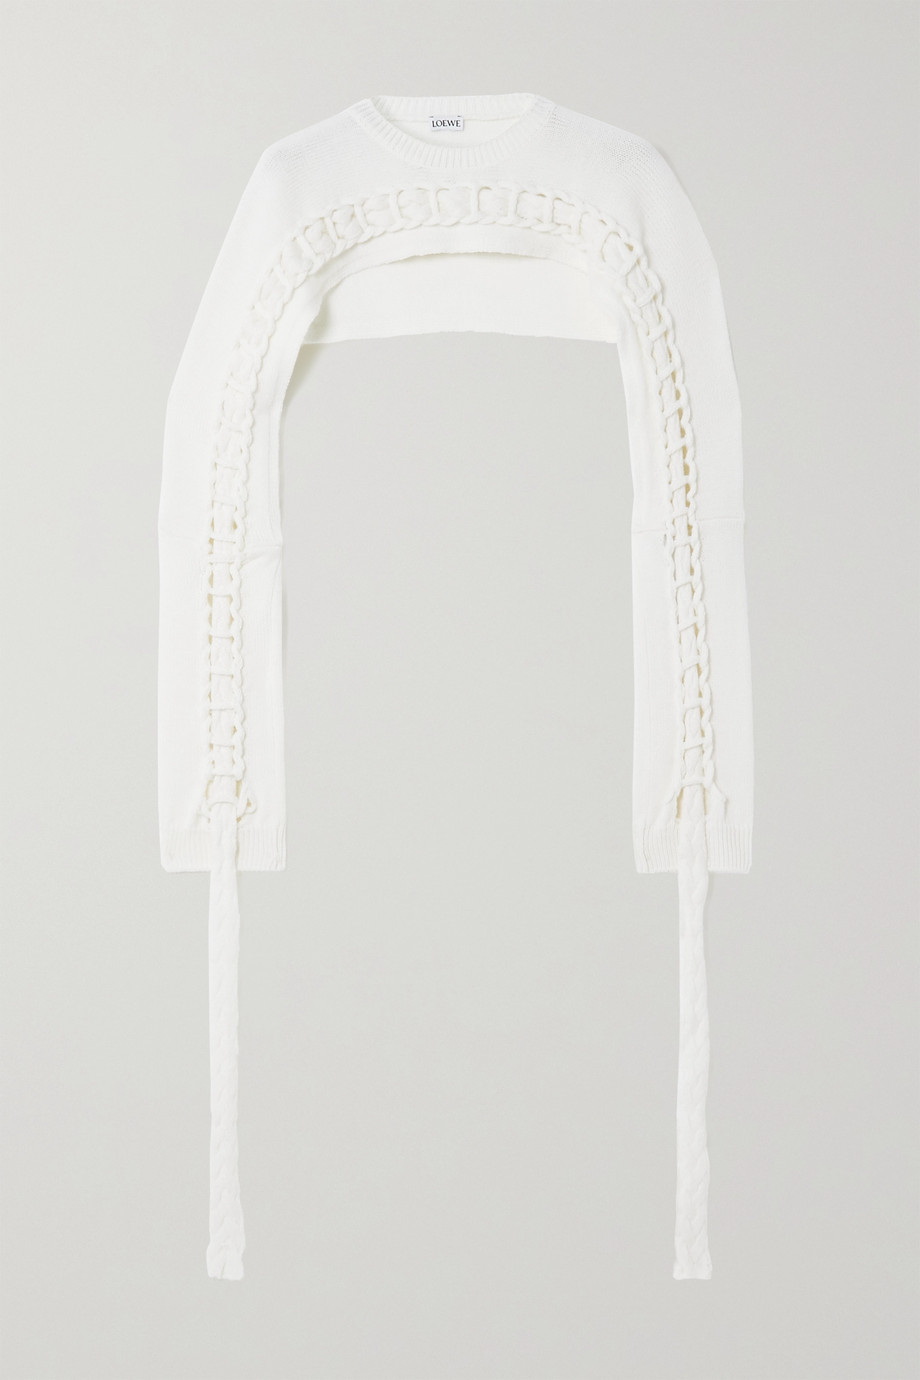 Loewe Cropped braided wool sweater